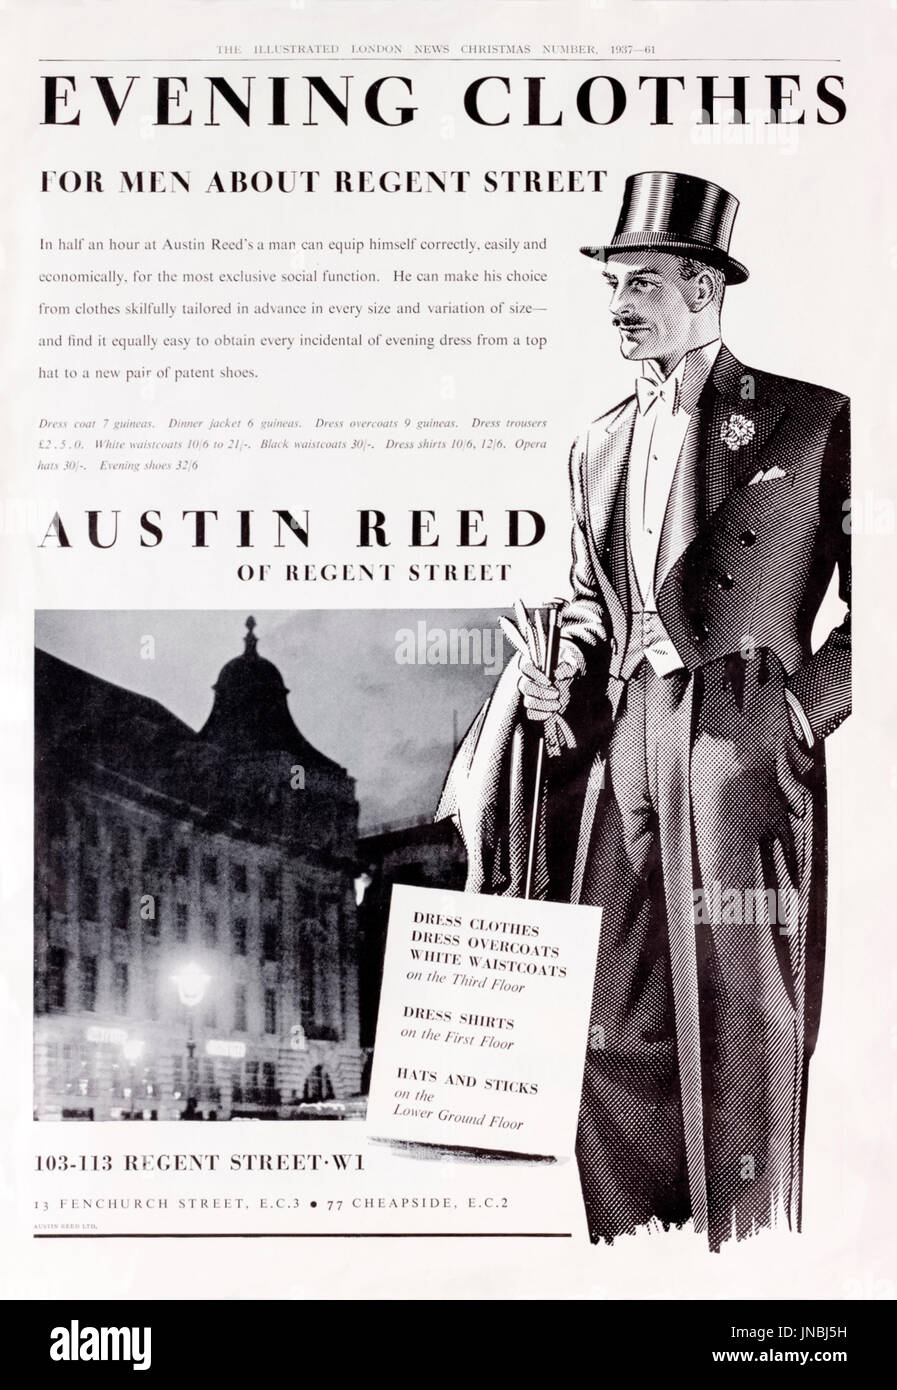 Evening Clothes For Men About Regent Street Full Page 1937 Stock Photo Alamy